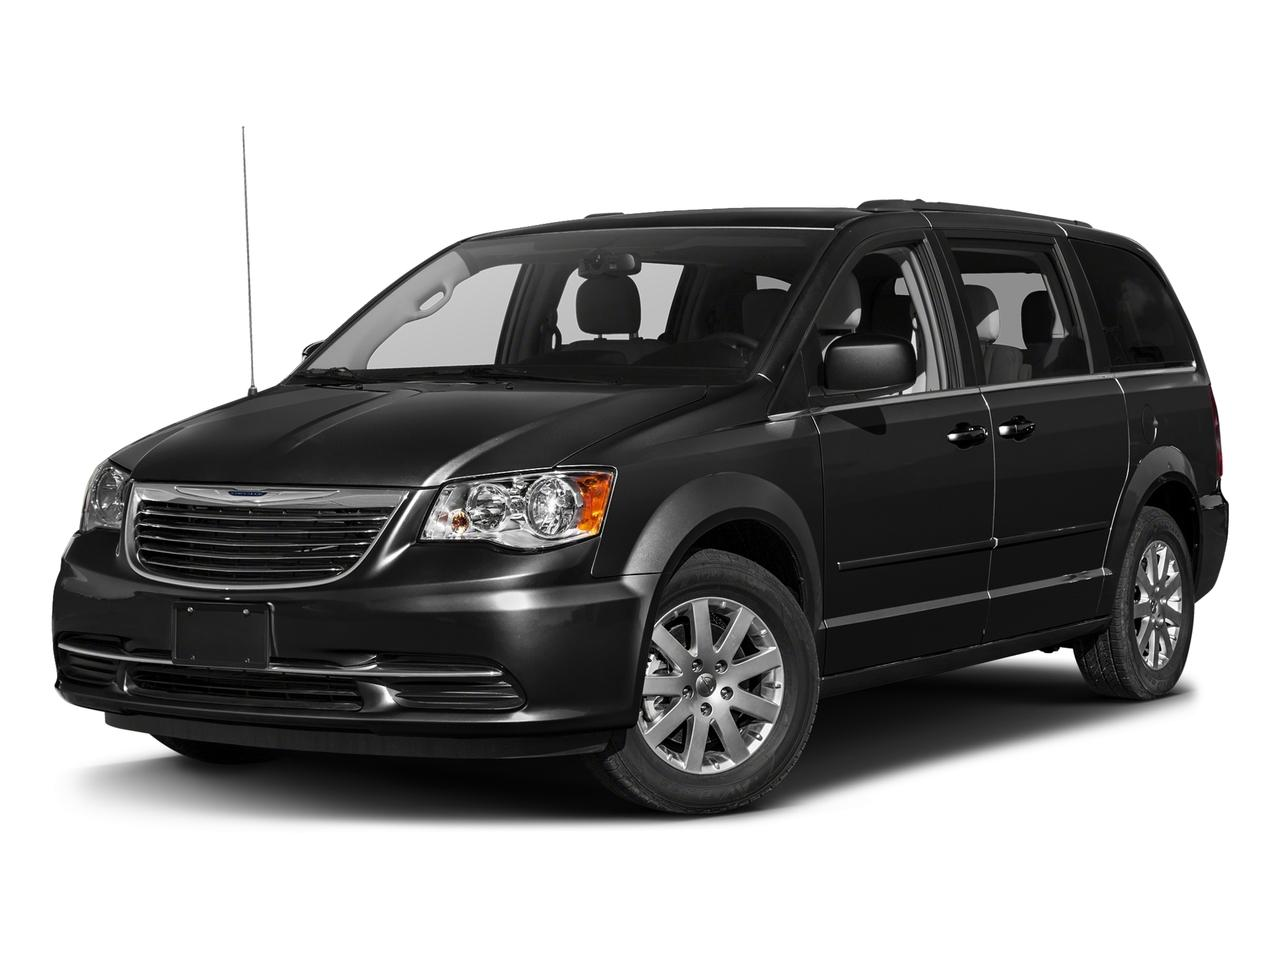 2016 Chrysler Town & Country Vehicle Photo in Odessa, TX 79762